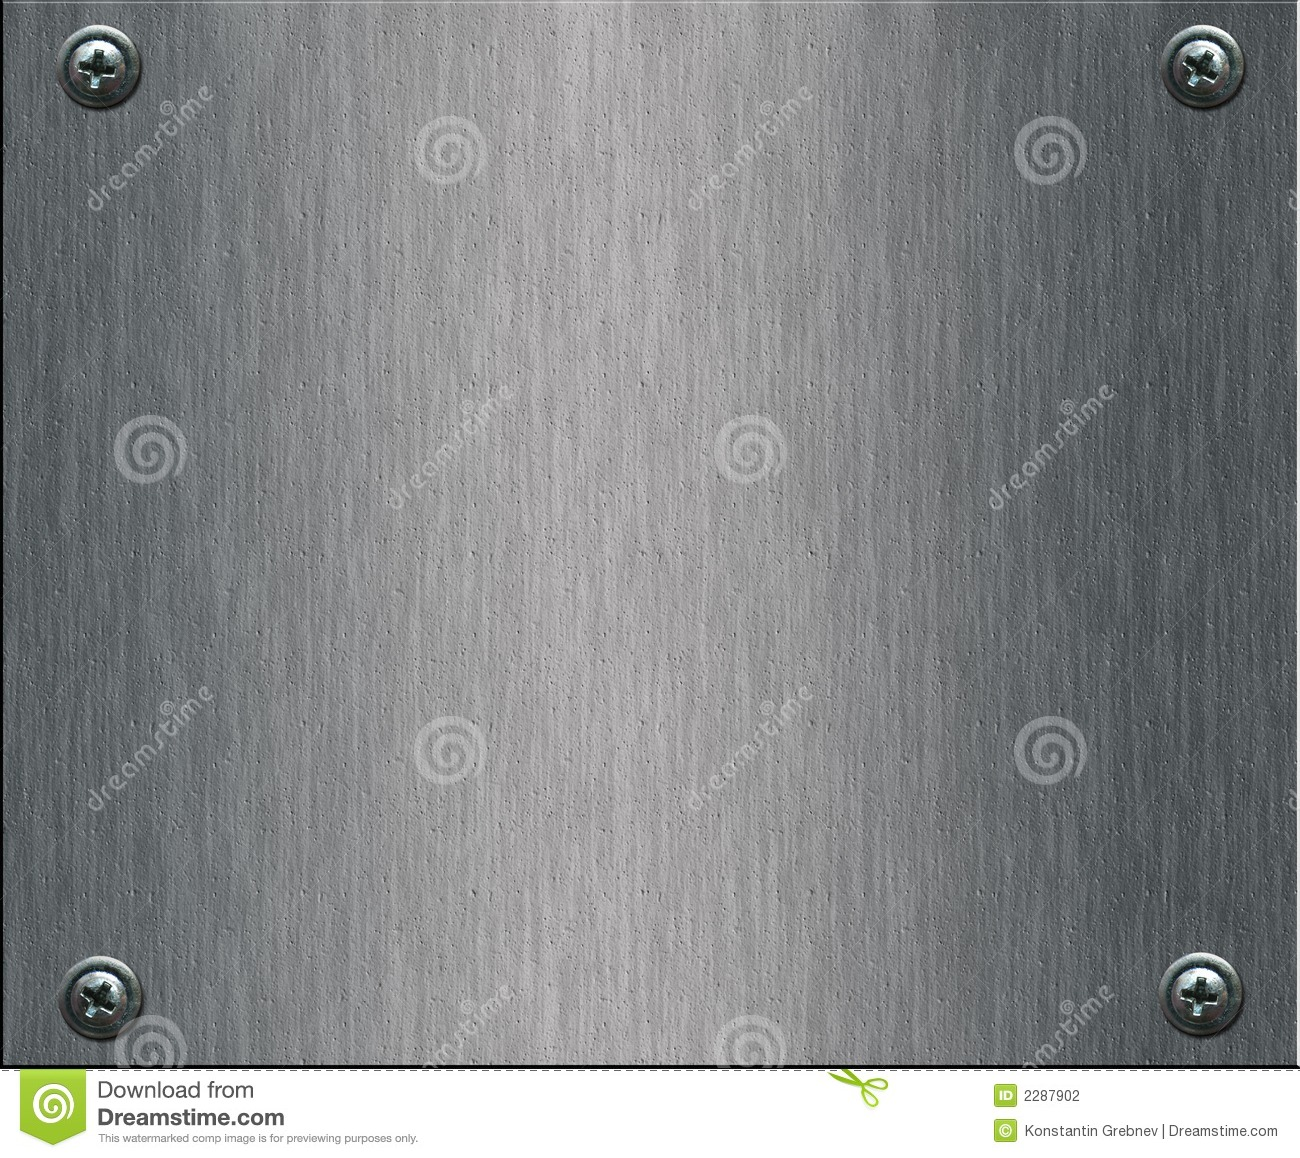 Steel plate with bolts